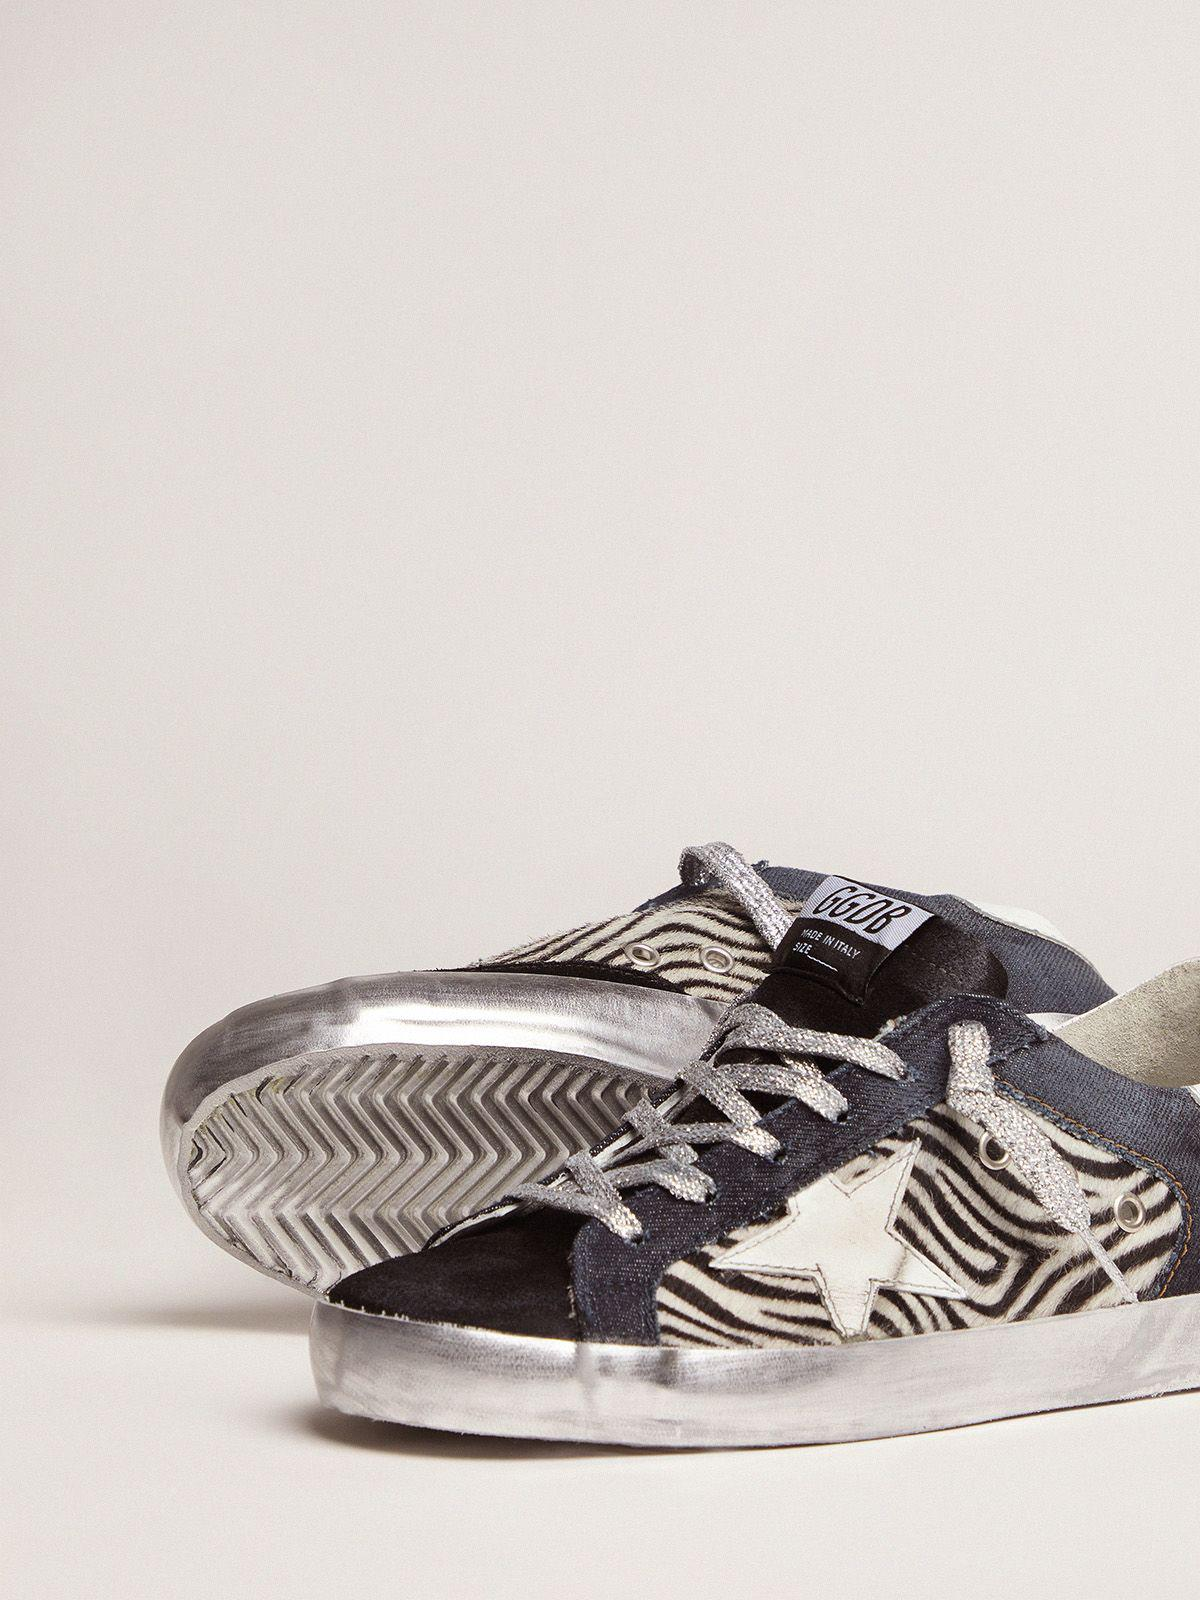 LAB Limited Edition Super-Star sneakers in denim, zebra-print pony skin and suede 2